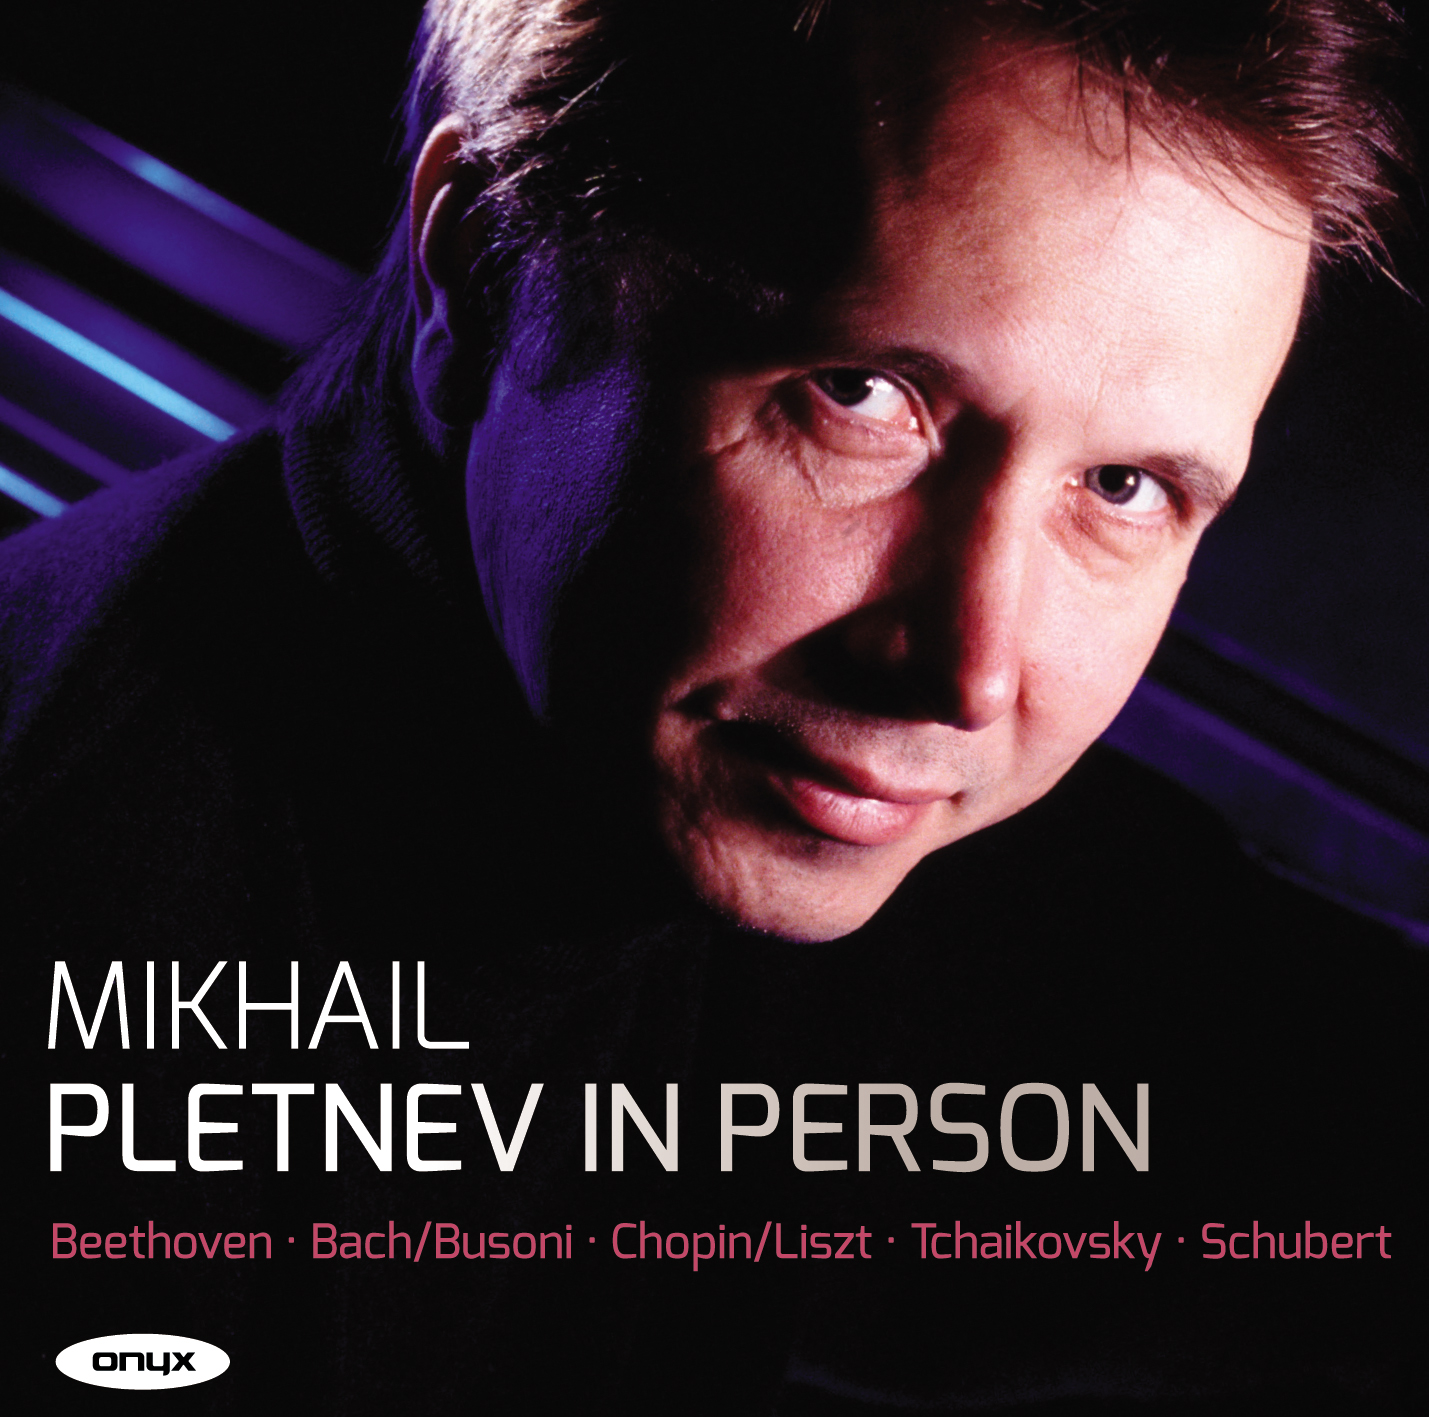 Mikhail Pletnev in Person